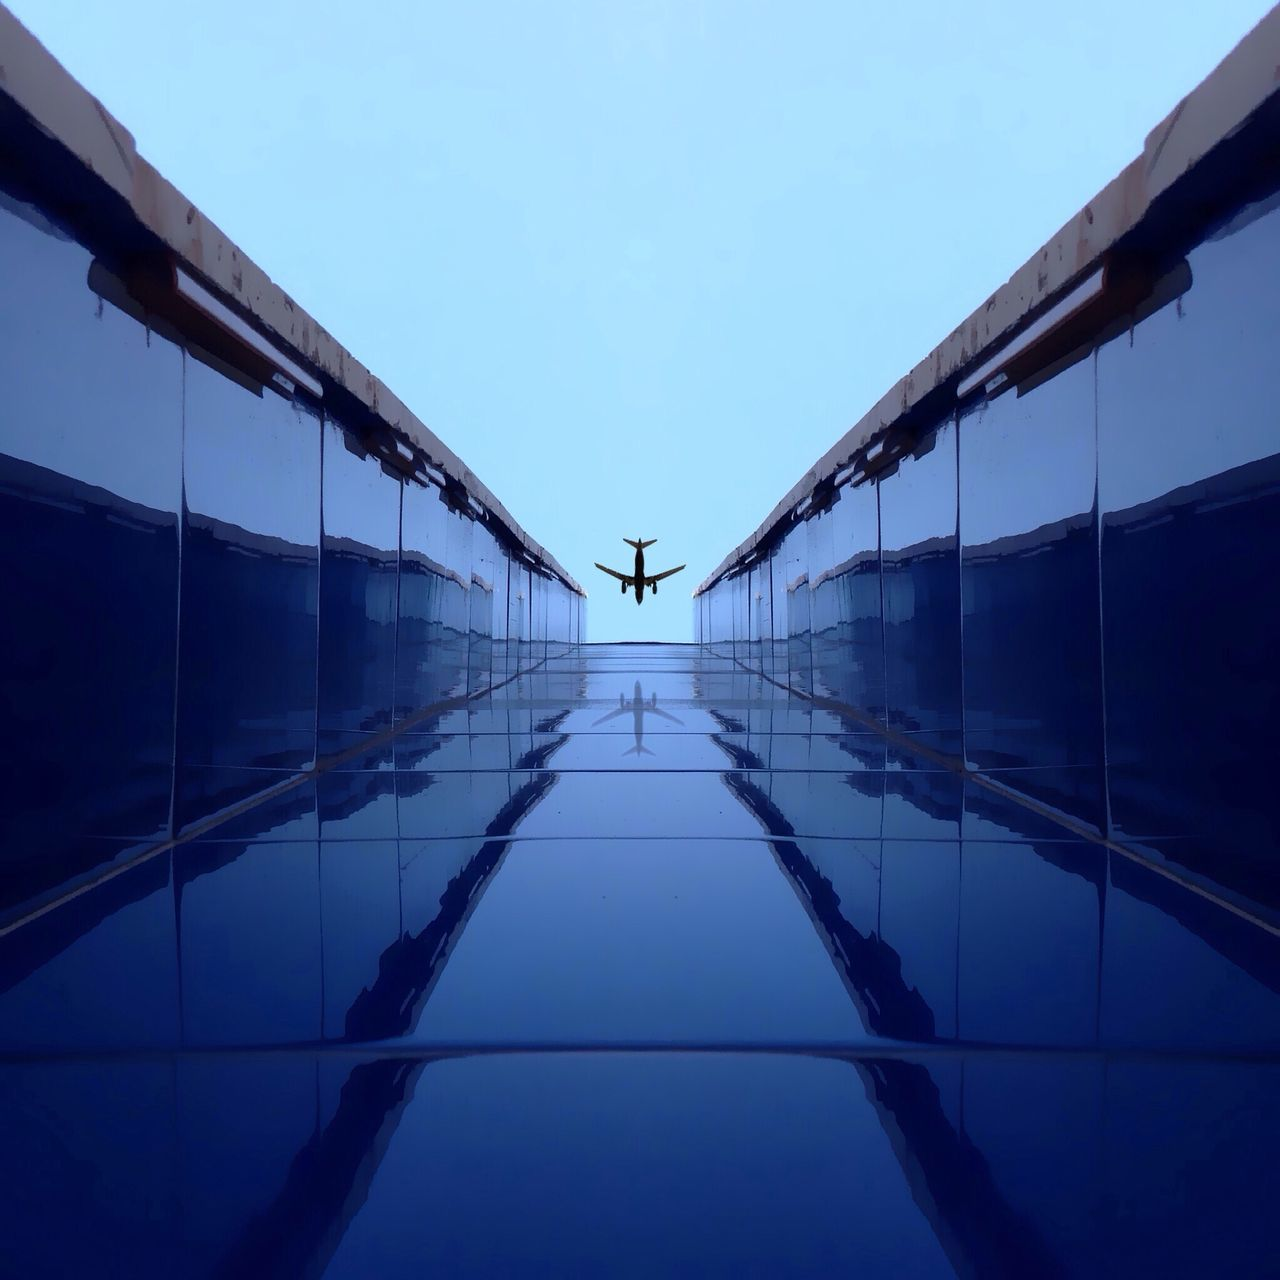 Airplane Reflection Learn & Shoot: Leading Lines Blue Wave